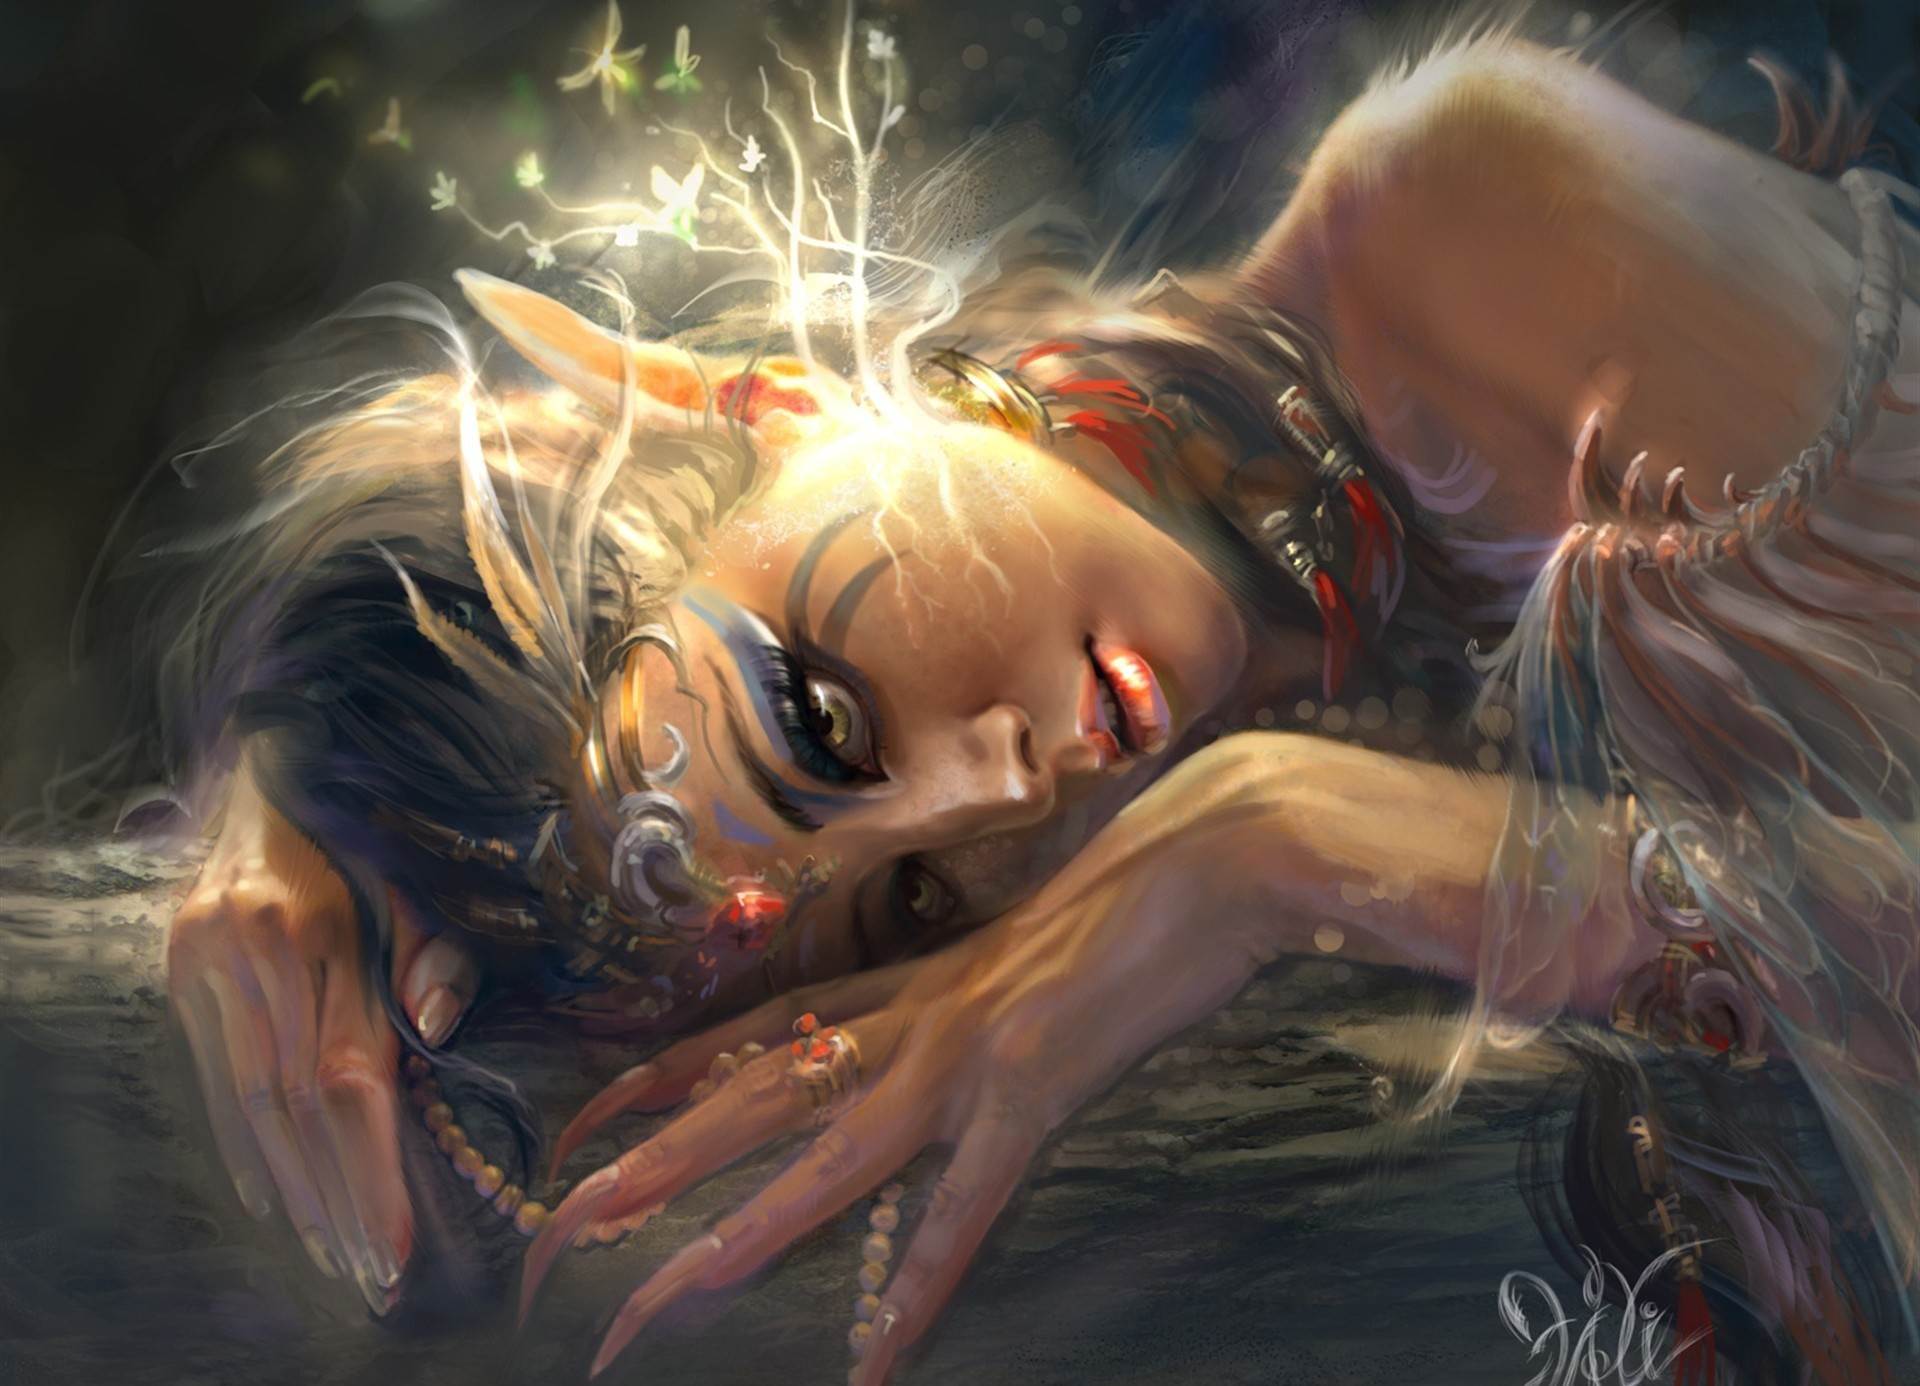 96218 download wallpaper Fantasy, Girl, Elf, Ears, Art, Shine, Light, Leaves screensavers and pictures for free